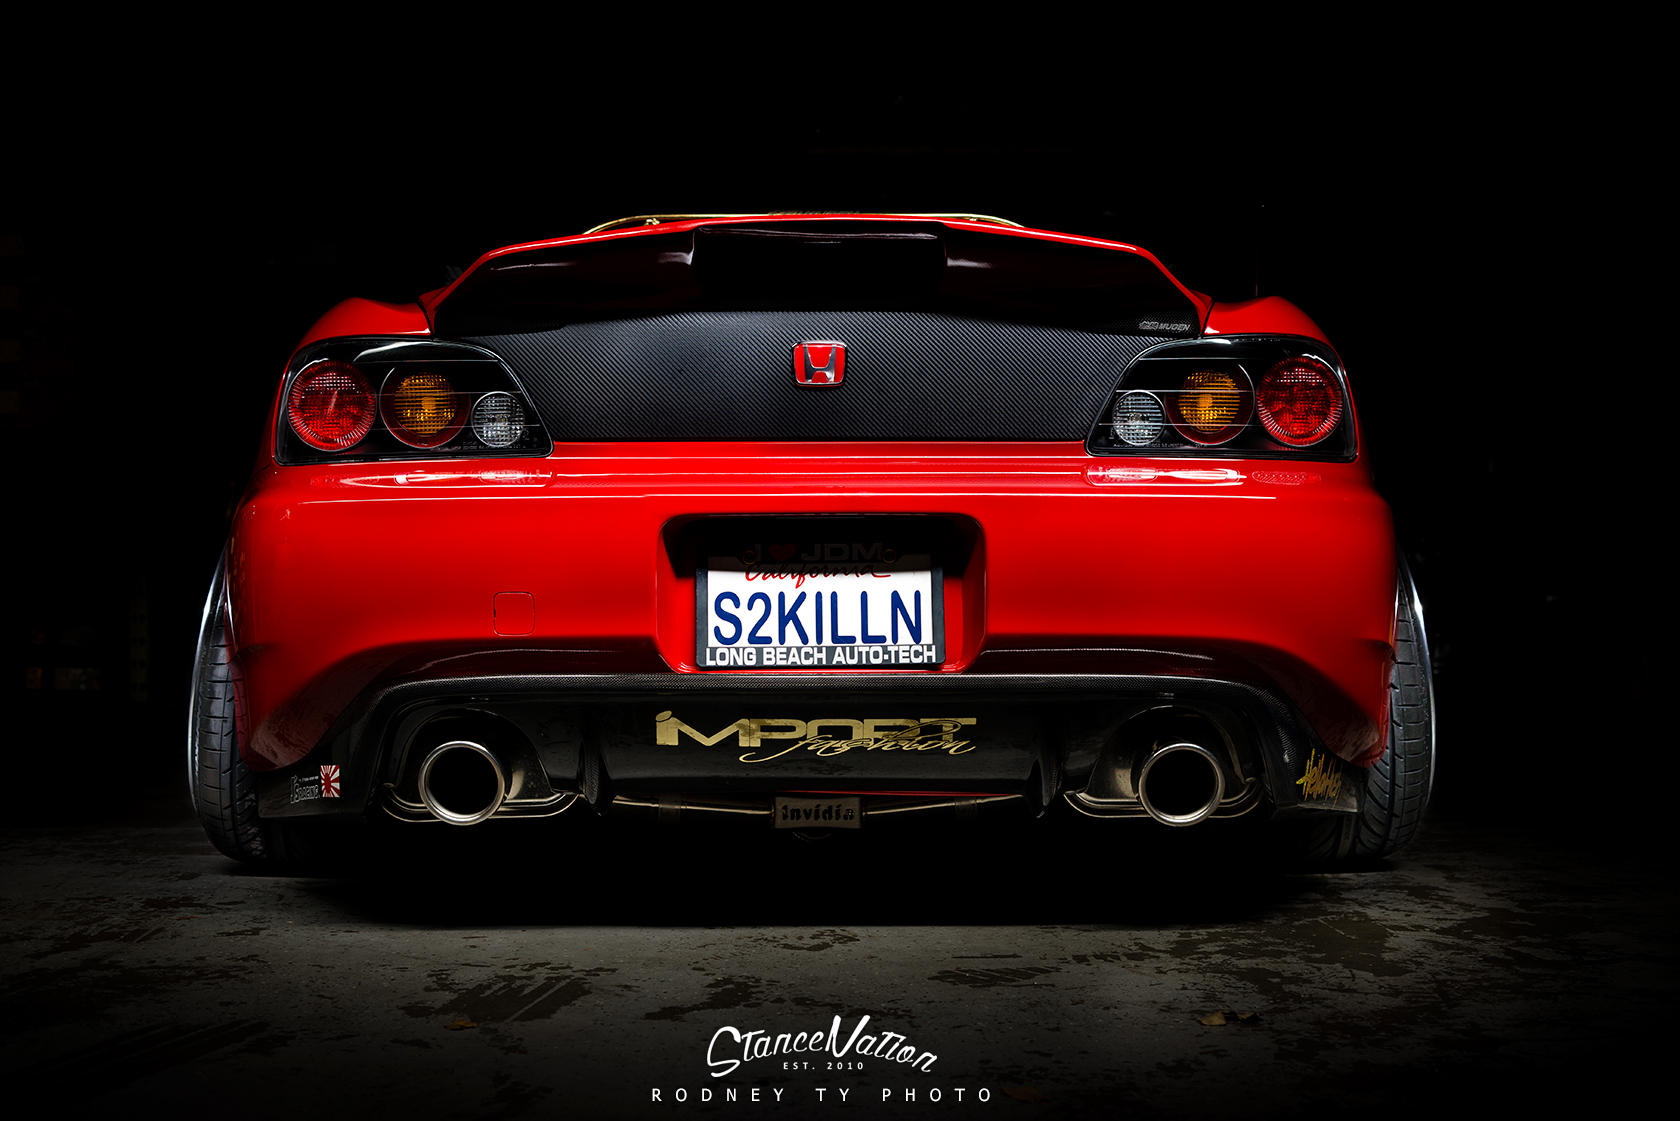 S2killn Glen Villanuevas Stunning Honda S2000 on first honda odyssey